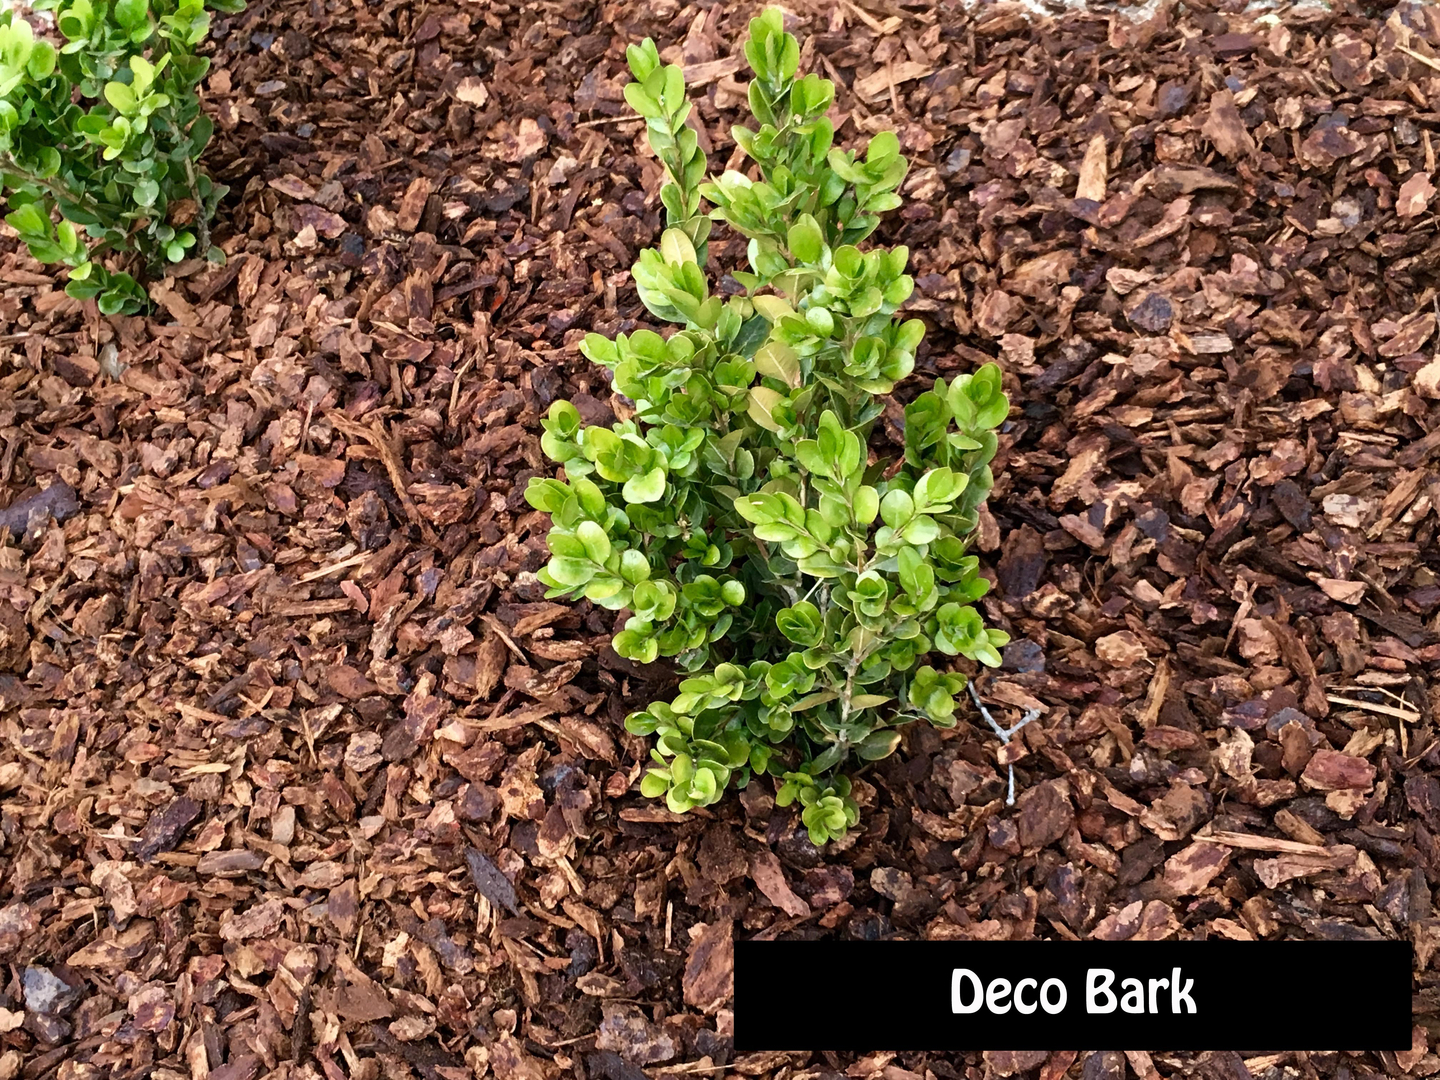 ground covers & mulch